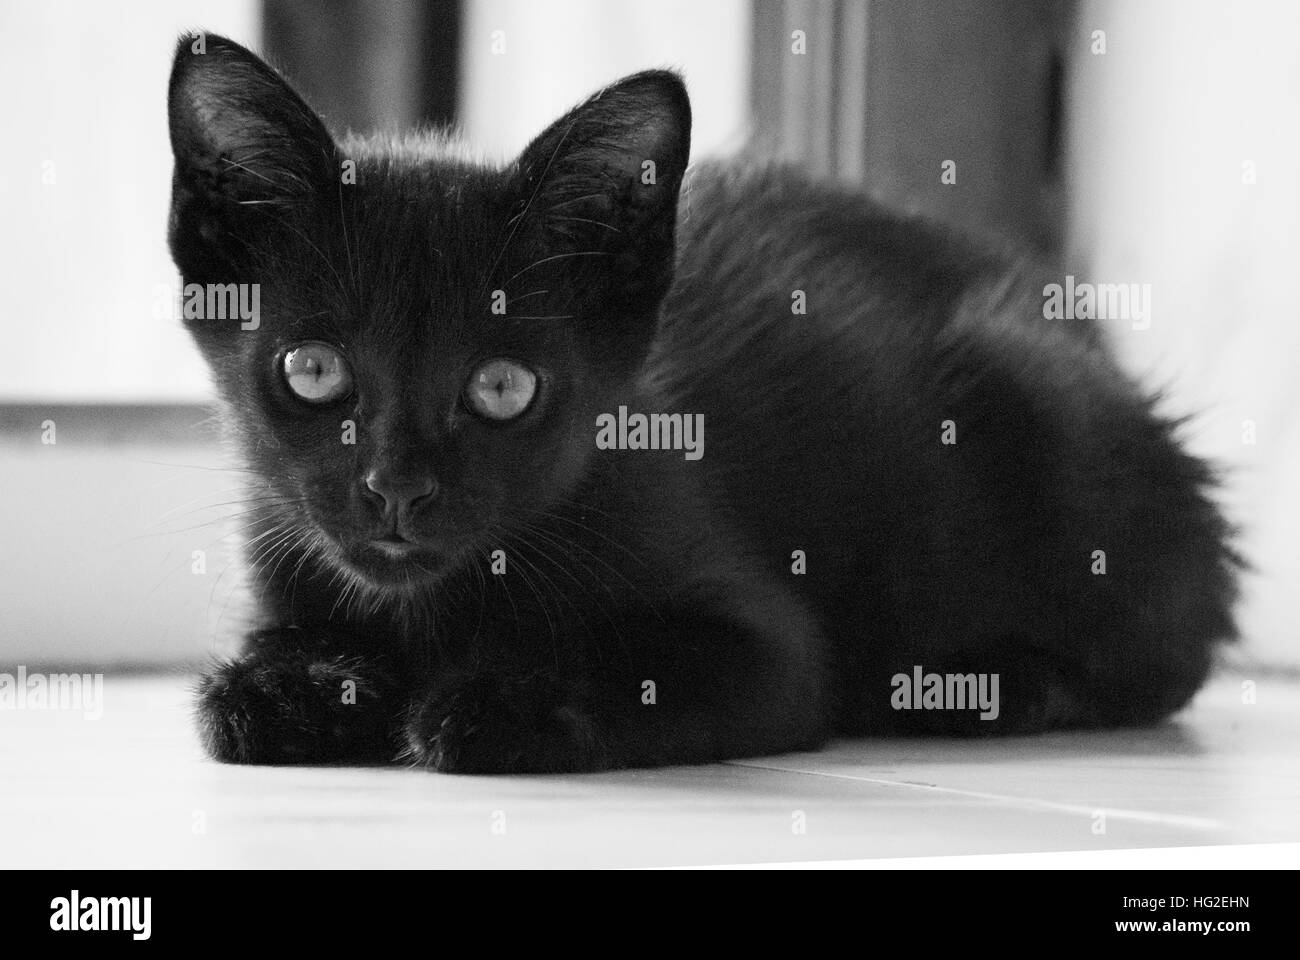 The Careful cat! - Stock Image